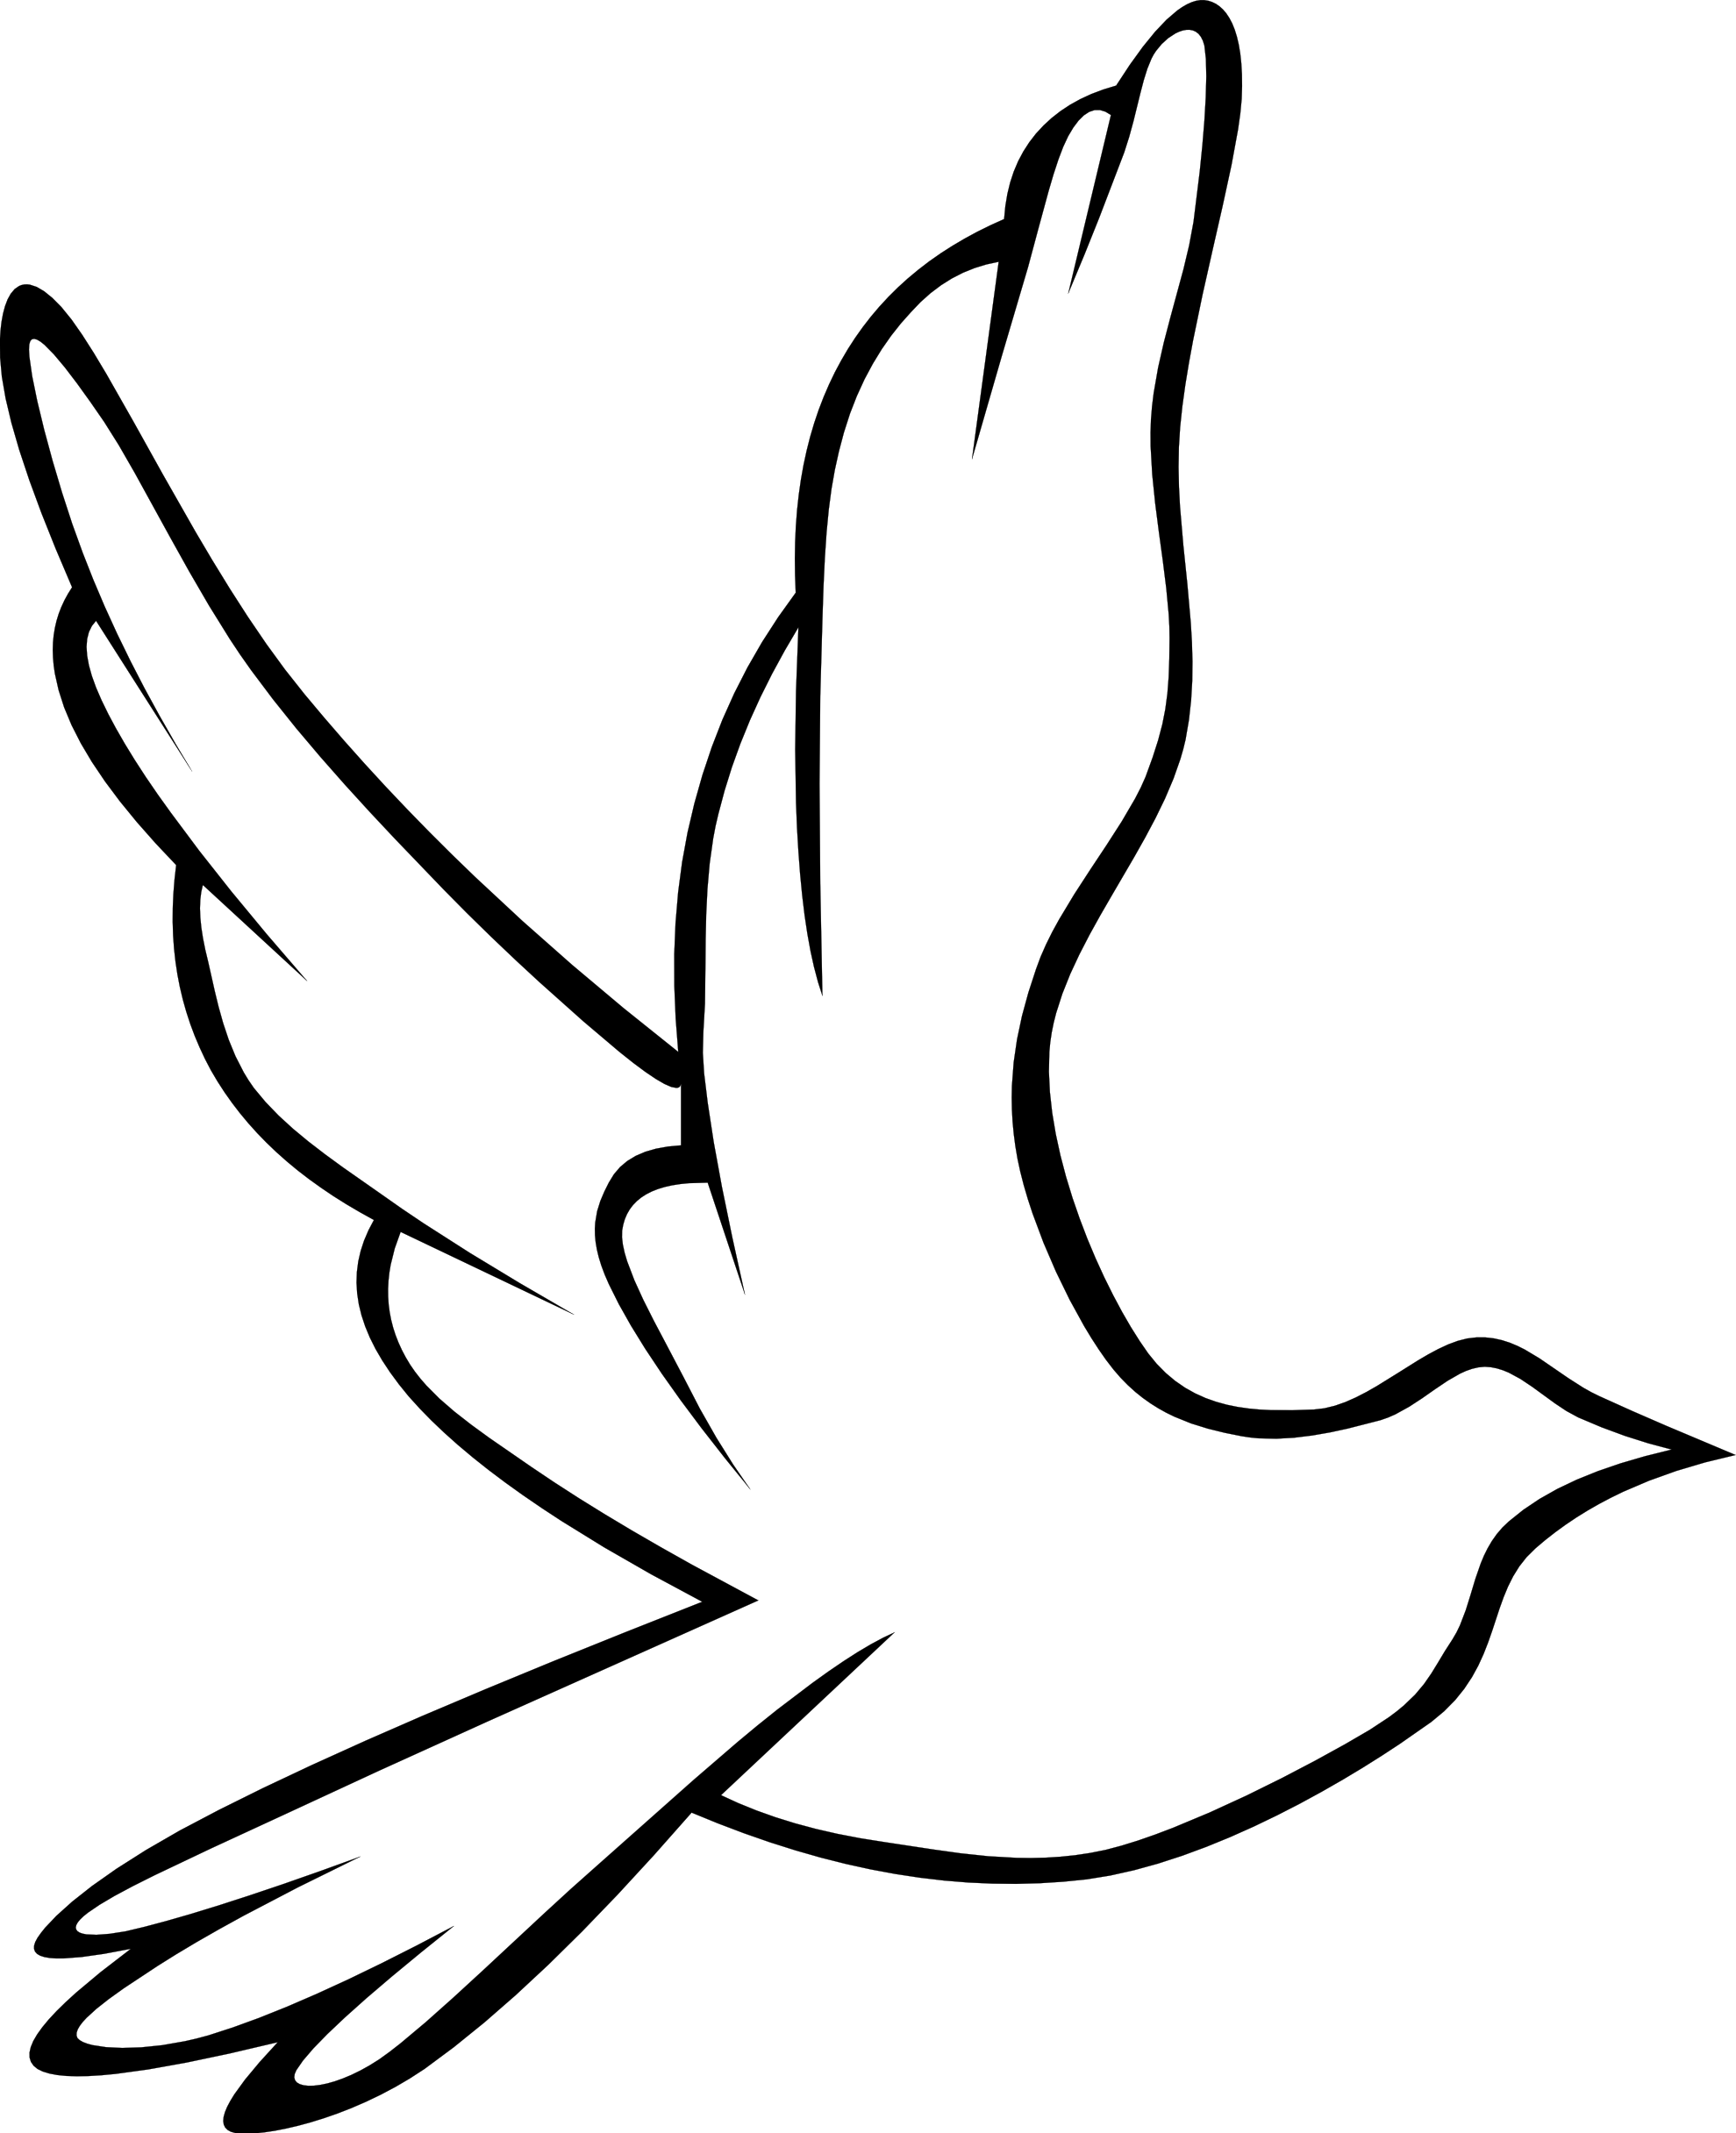 clip art peace dove 1 94 black white line art clipart best rh pinterest co uk clip art dove with olive branch clip art doves border